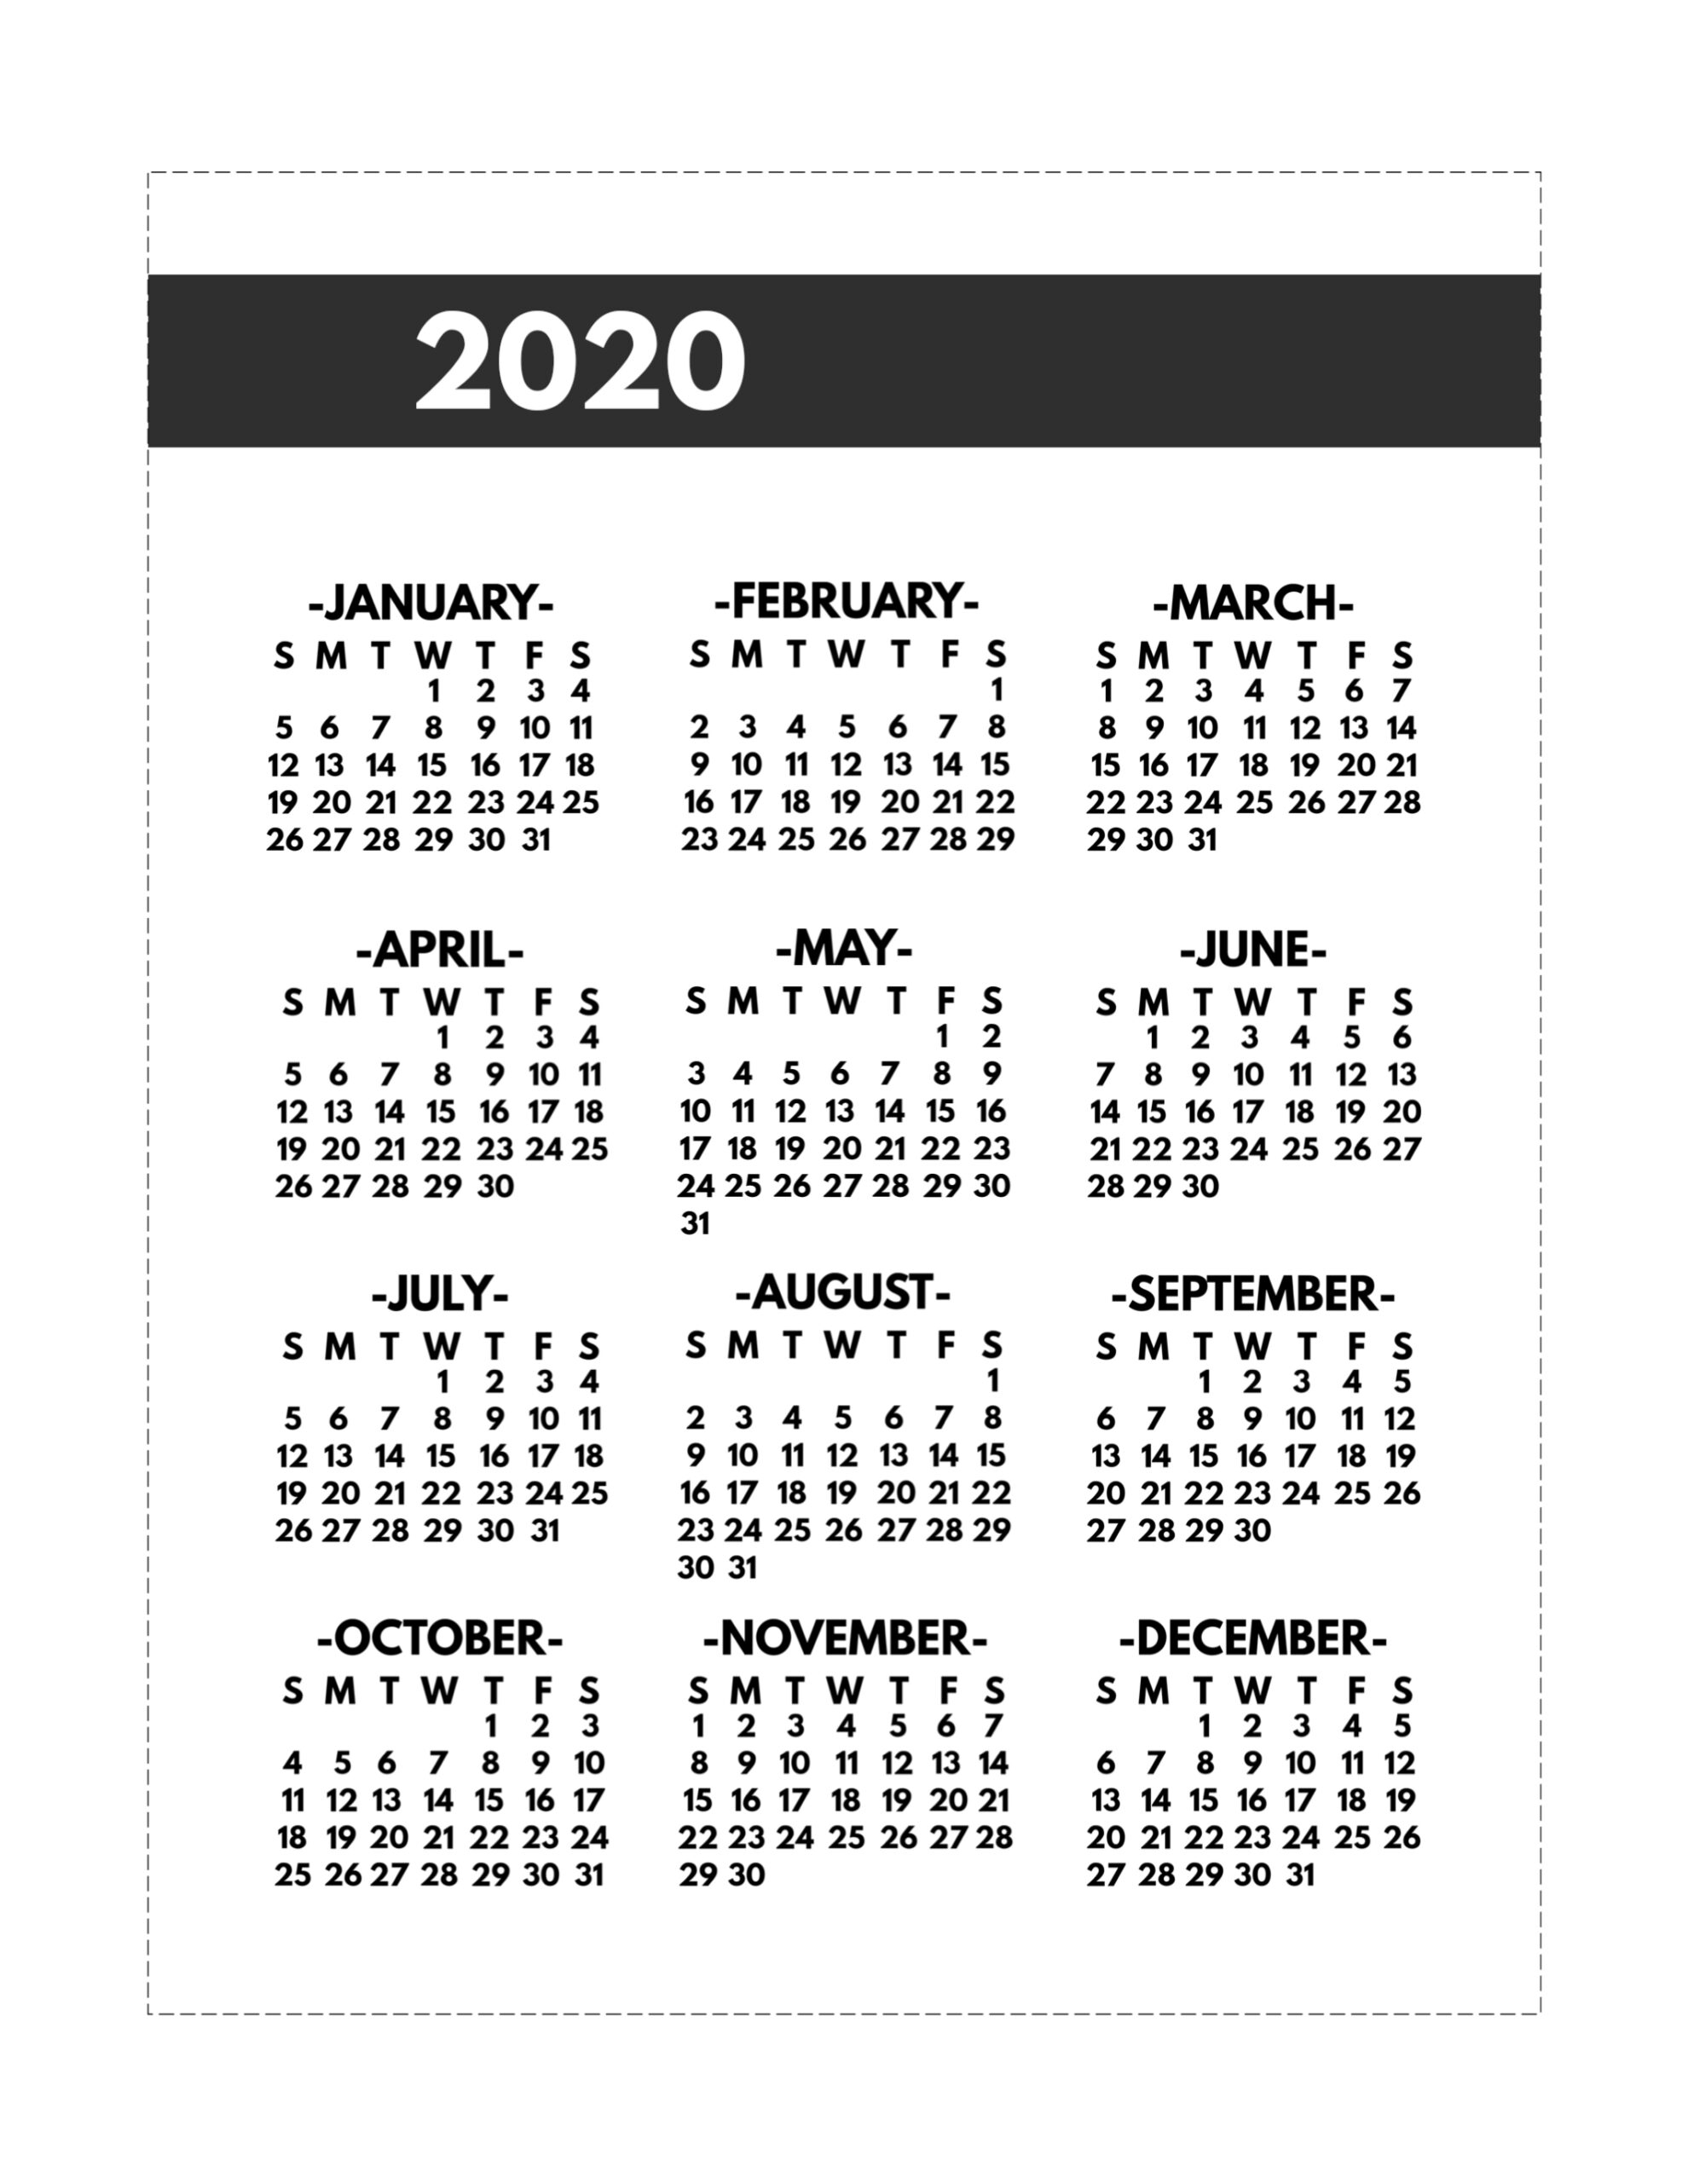 2020 Printable One Page Year At A Glance Calendar - Paper within 2020 Year At A Glance Calendar